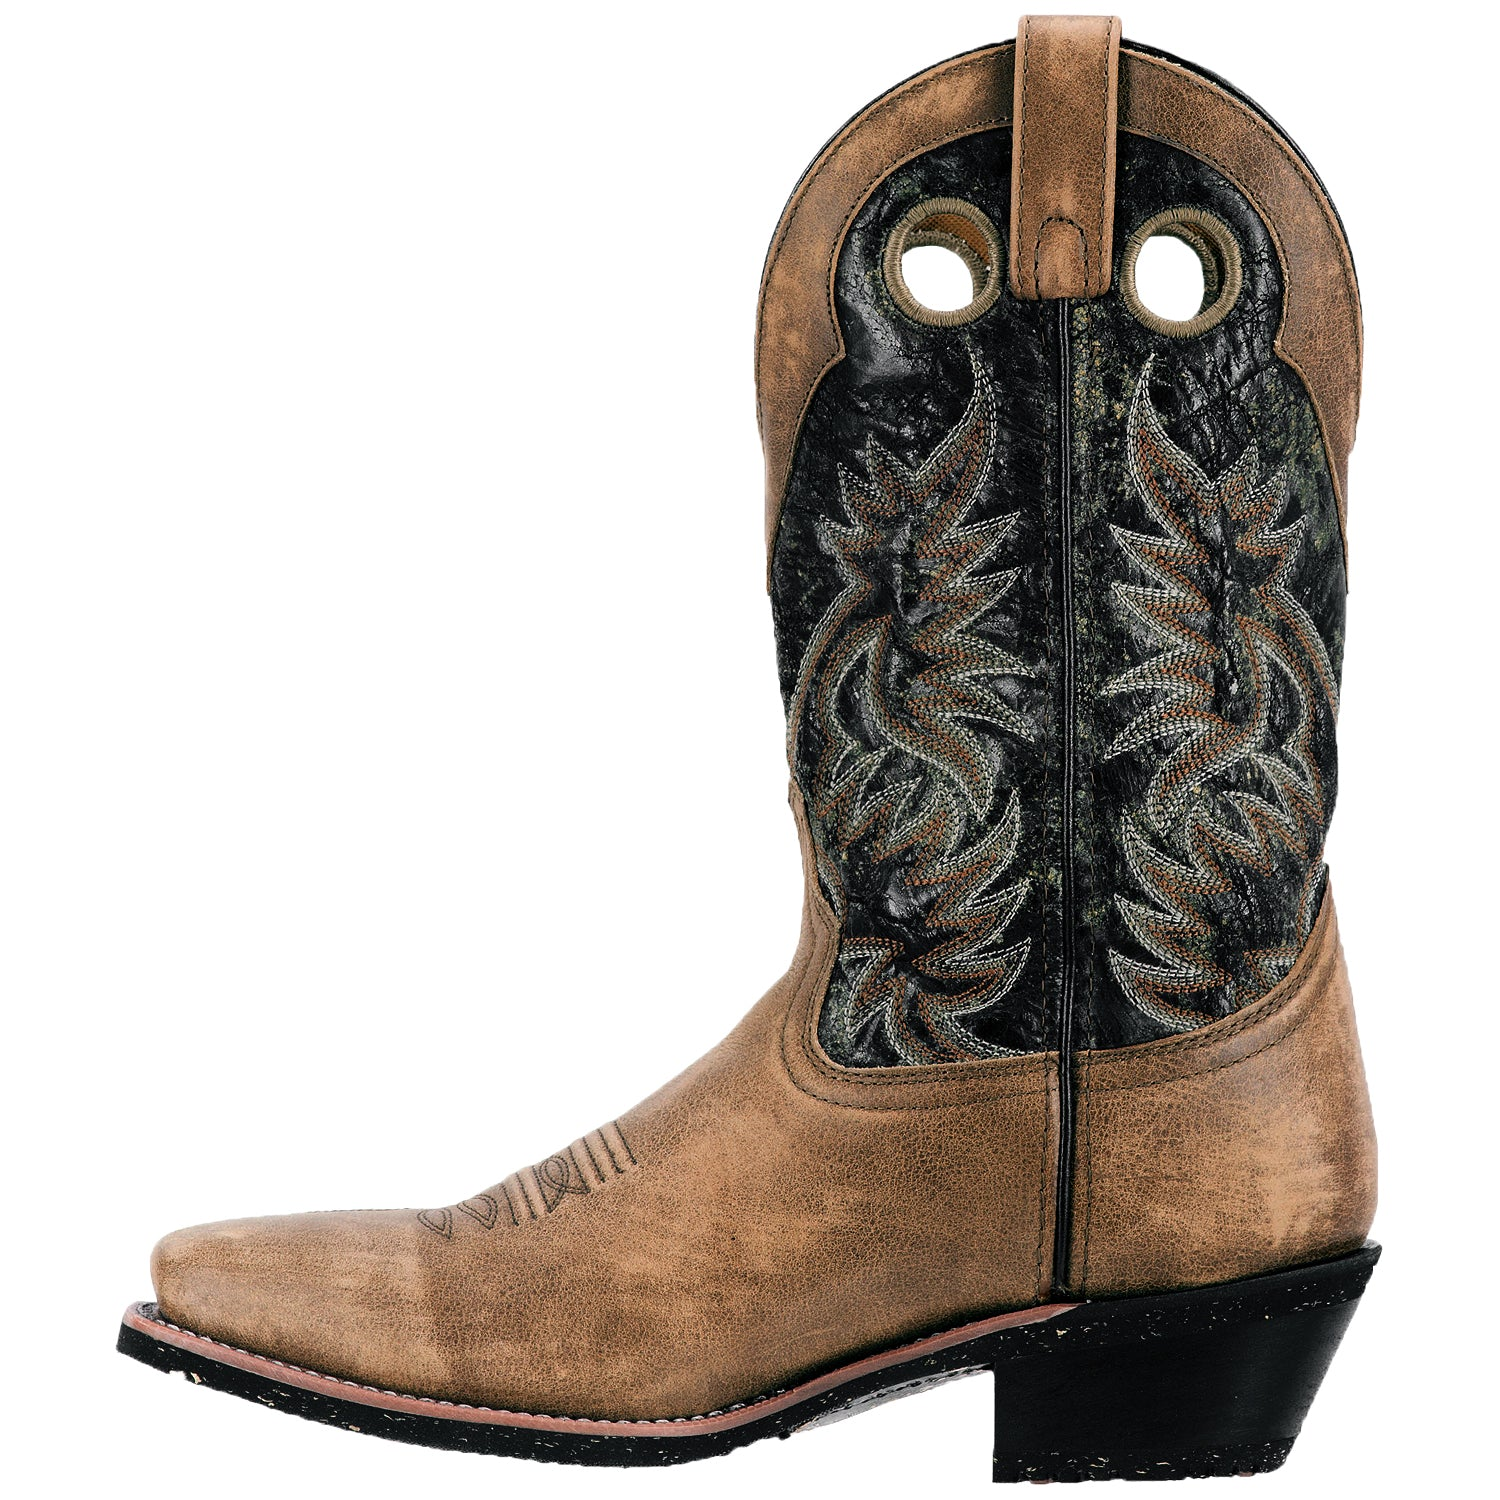 STILLWATER LEATHER BOOT 4254293262378